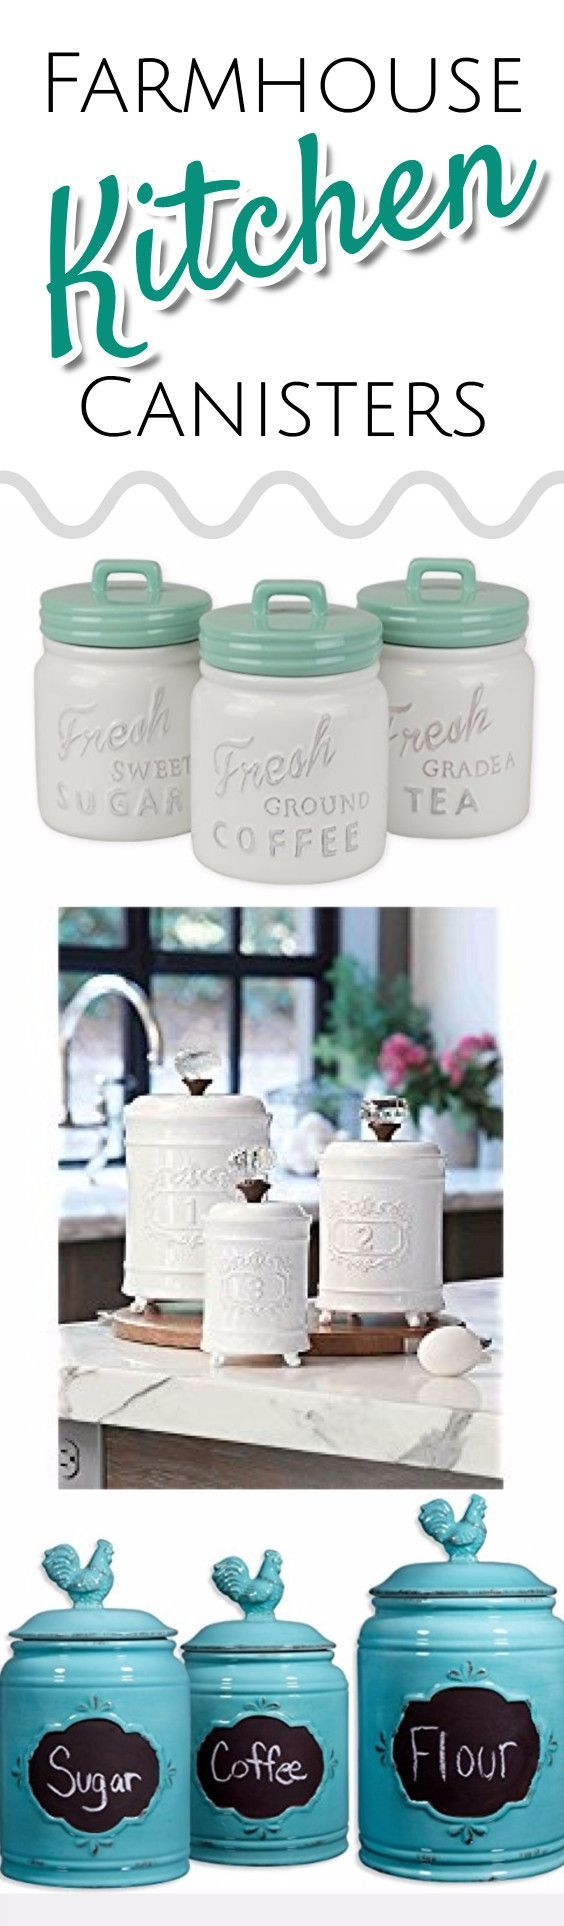 Farmhouse style canister sets - farmhouse kitchen decorating ideas